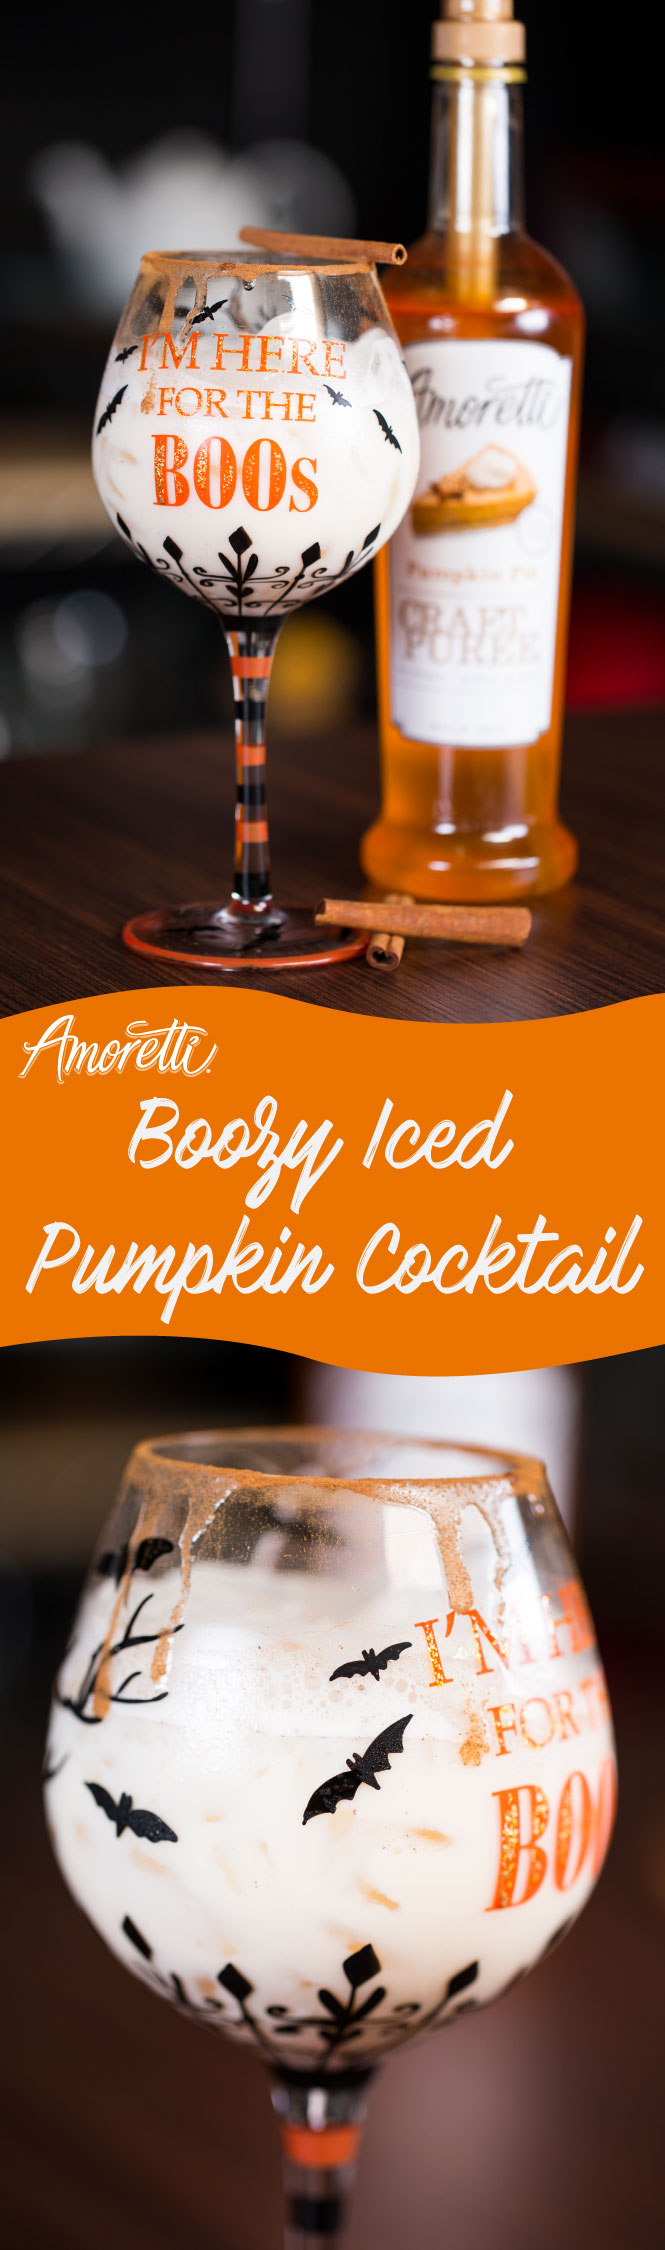 Amoretti Boozy Iced Pumpkin Cocktail: Perfect Halloween drink loaded with pumpkin pie flavor!